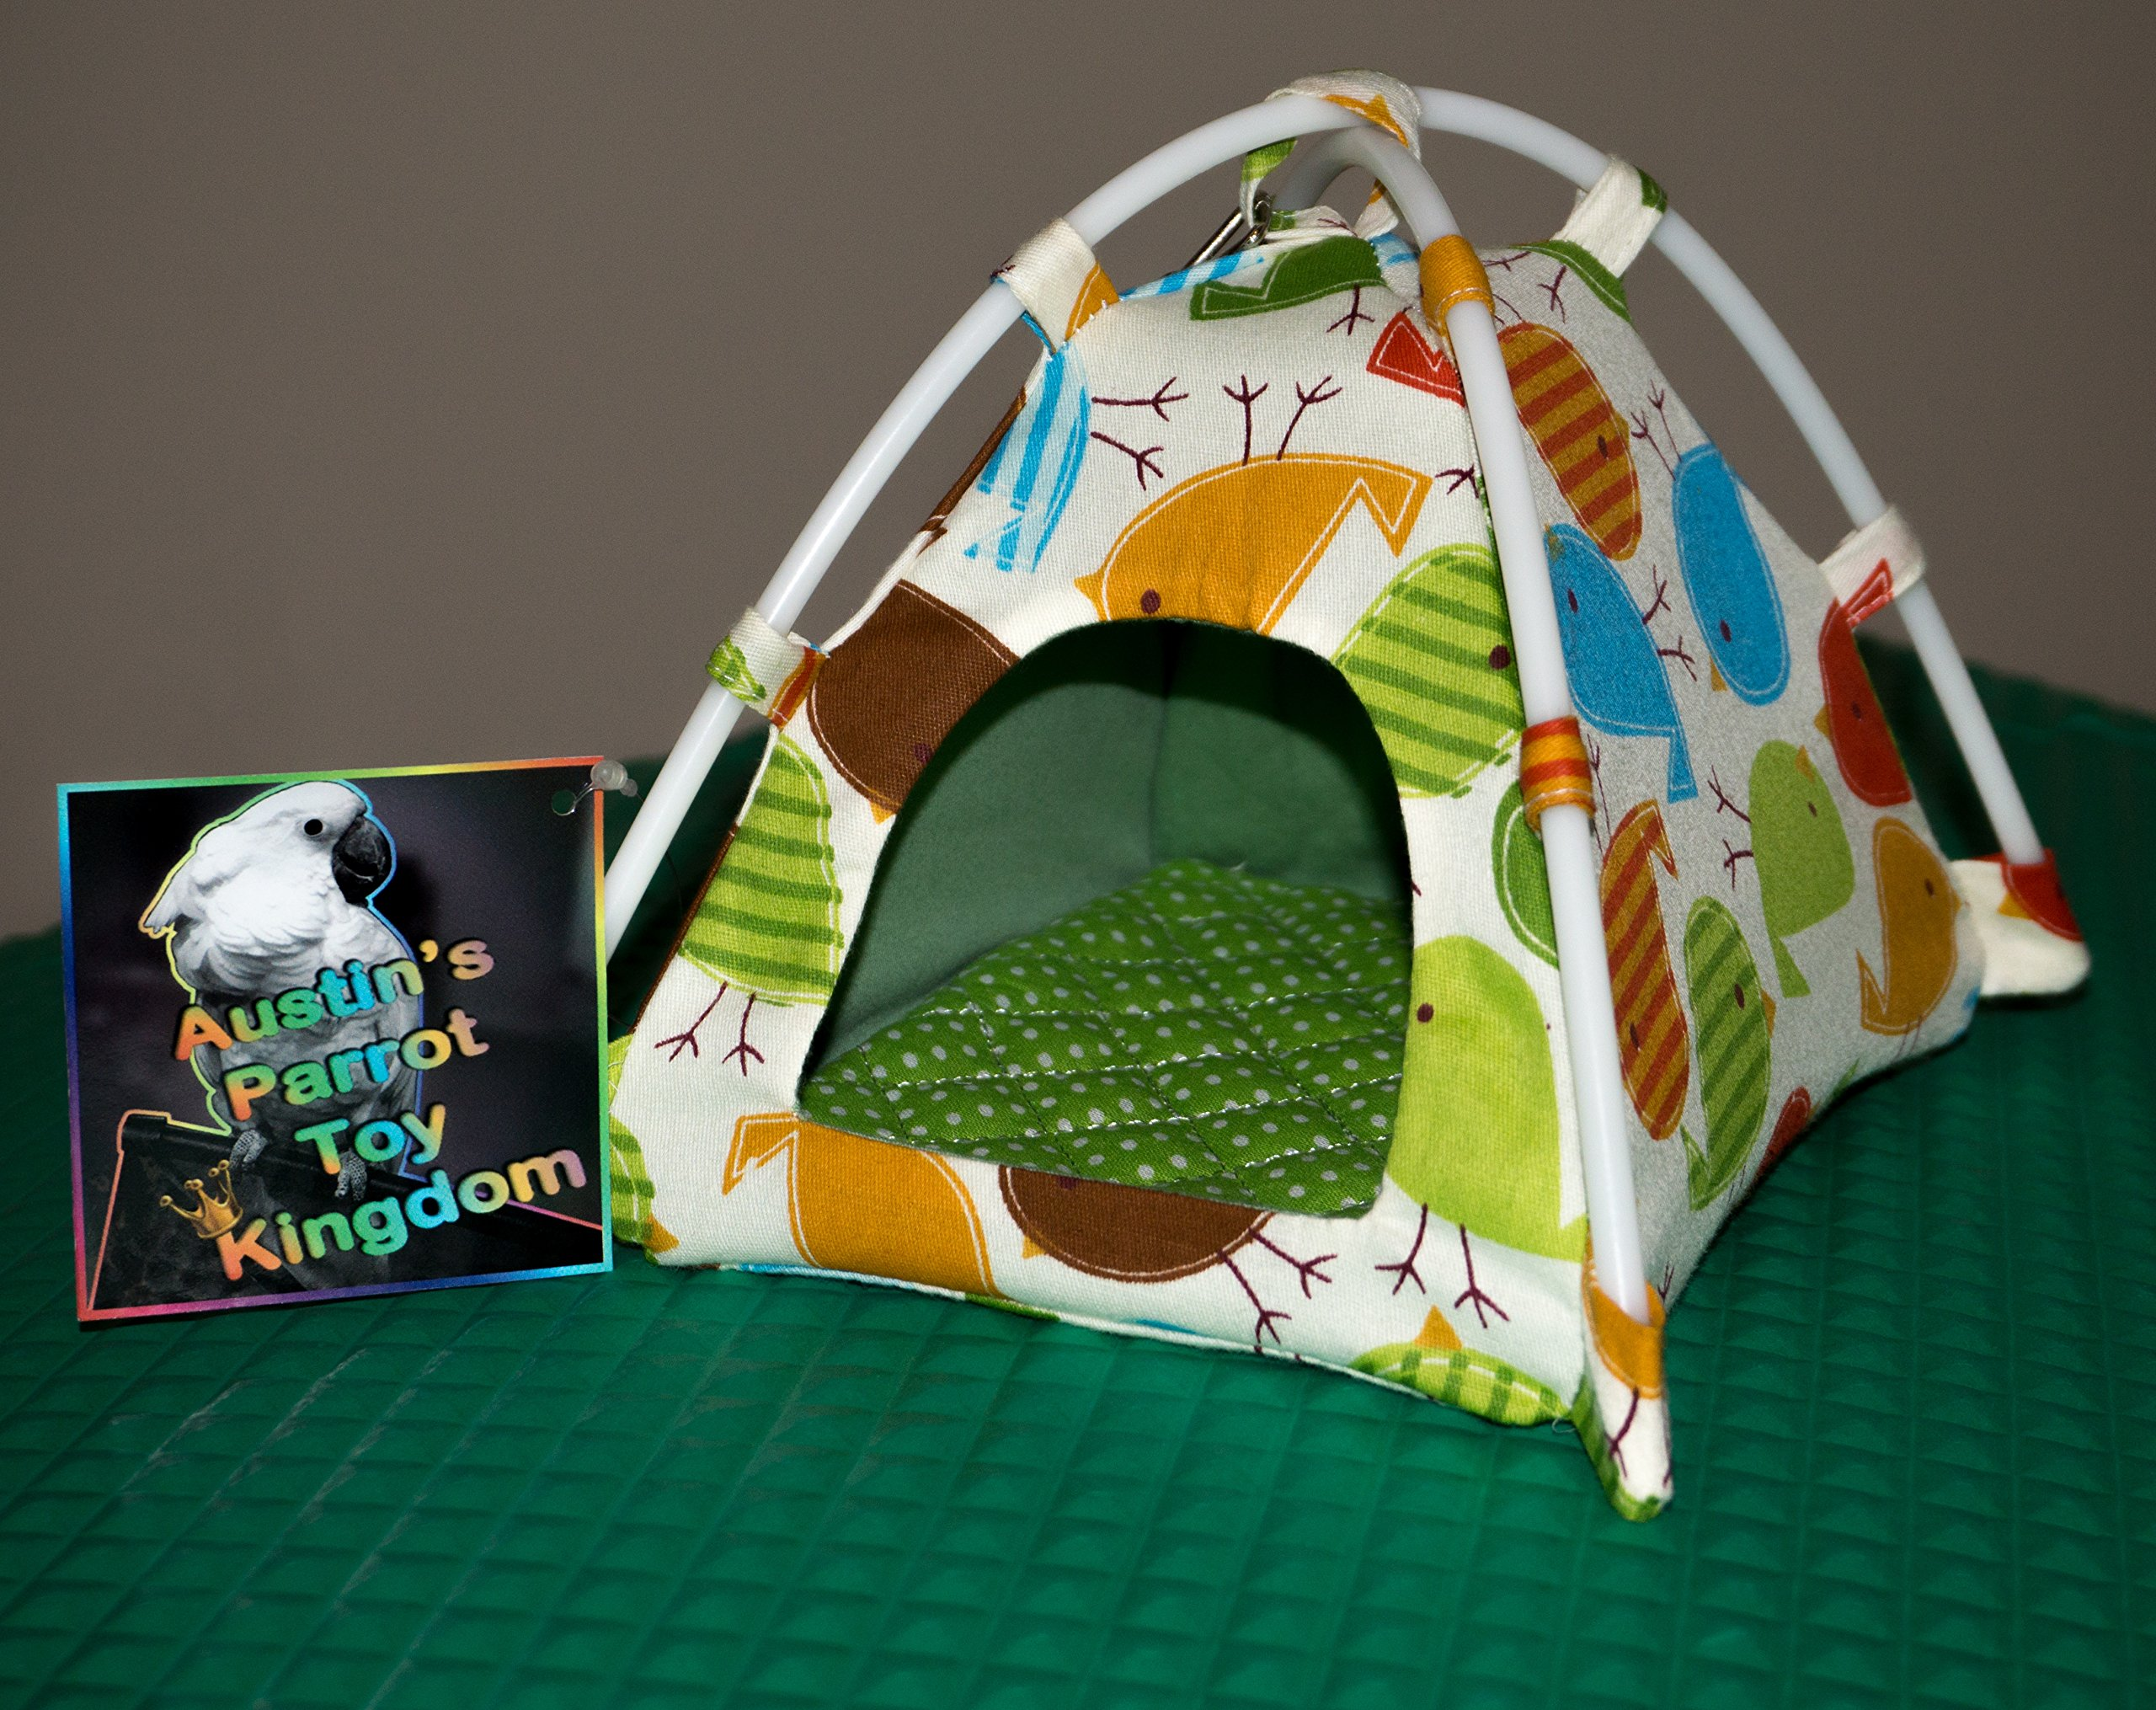 Austin's Parrot Toy Kingdom Colorful Pet Bird Nesting Tent Handcrafted Nesting Tent for your Parrot Bird Companion - Vibrant Fun Fabric Print to Stimulate & Entertain your Pet